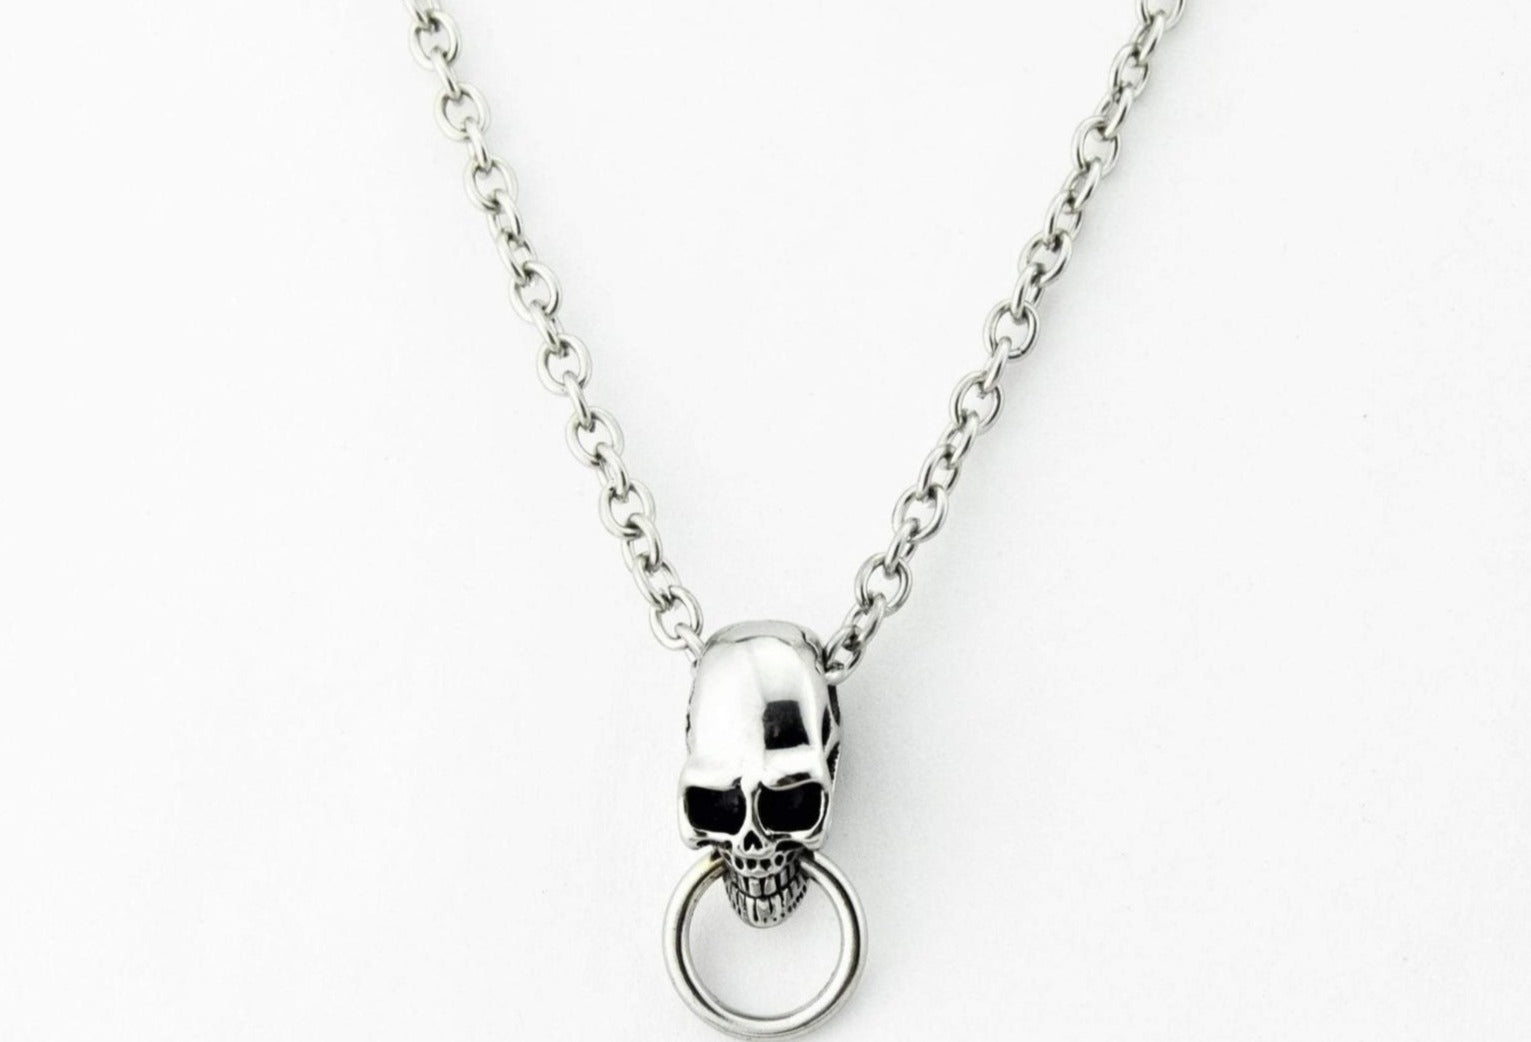 316L Surgical Stainless Steel Deluxe Skull O Ring BDSM Day Collar